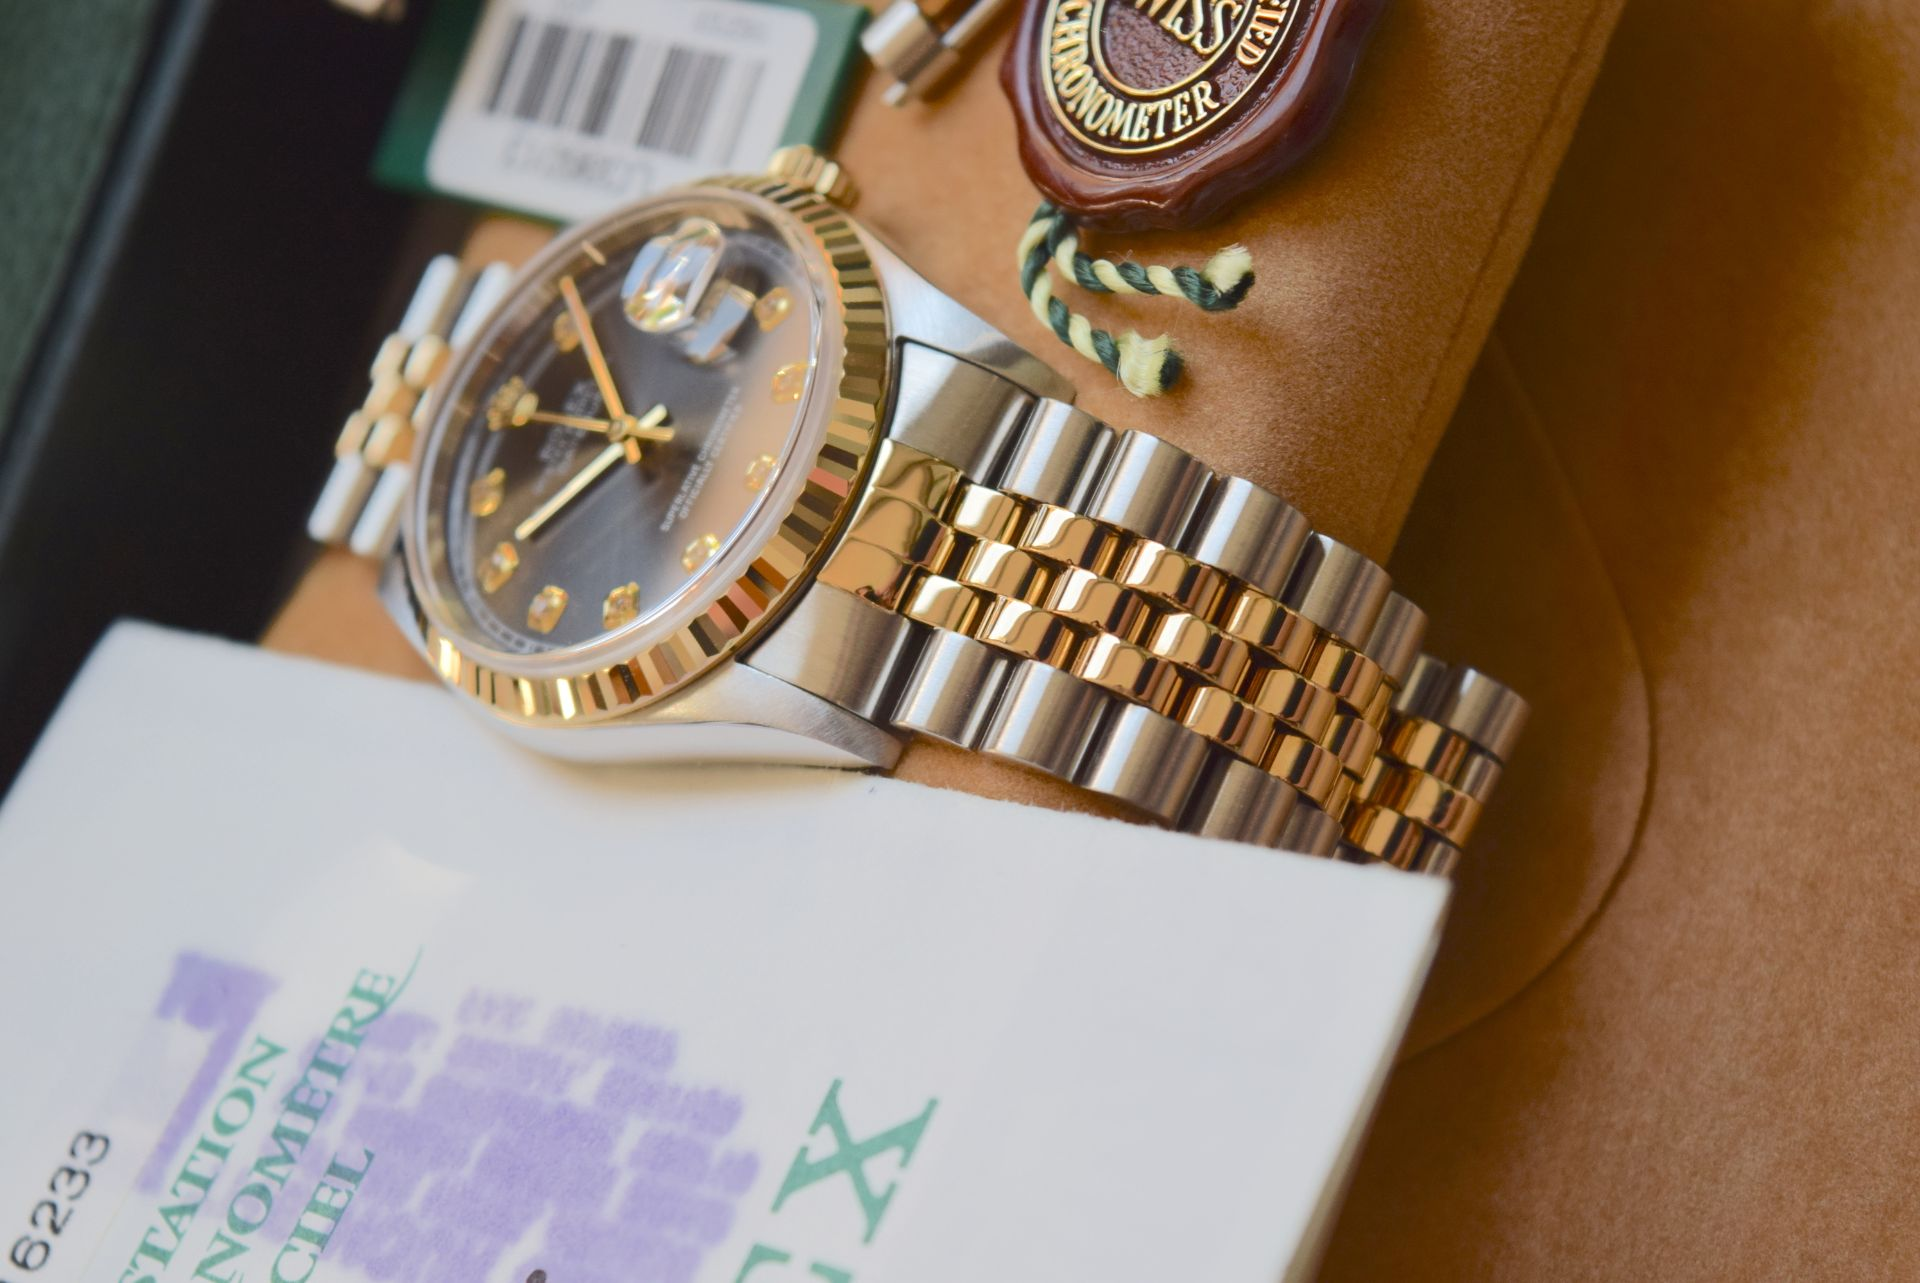 18CT GOLD/ STEEL ROLEX DATEJUST - 36MM, MENS (COMPLETE SET INC BOX, PAPERS, TAGS ETC) - Image 4 of 25